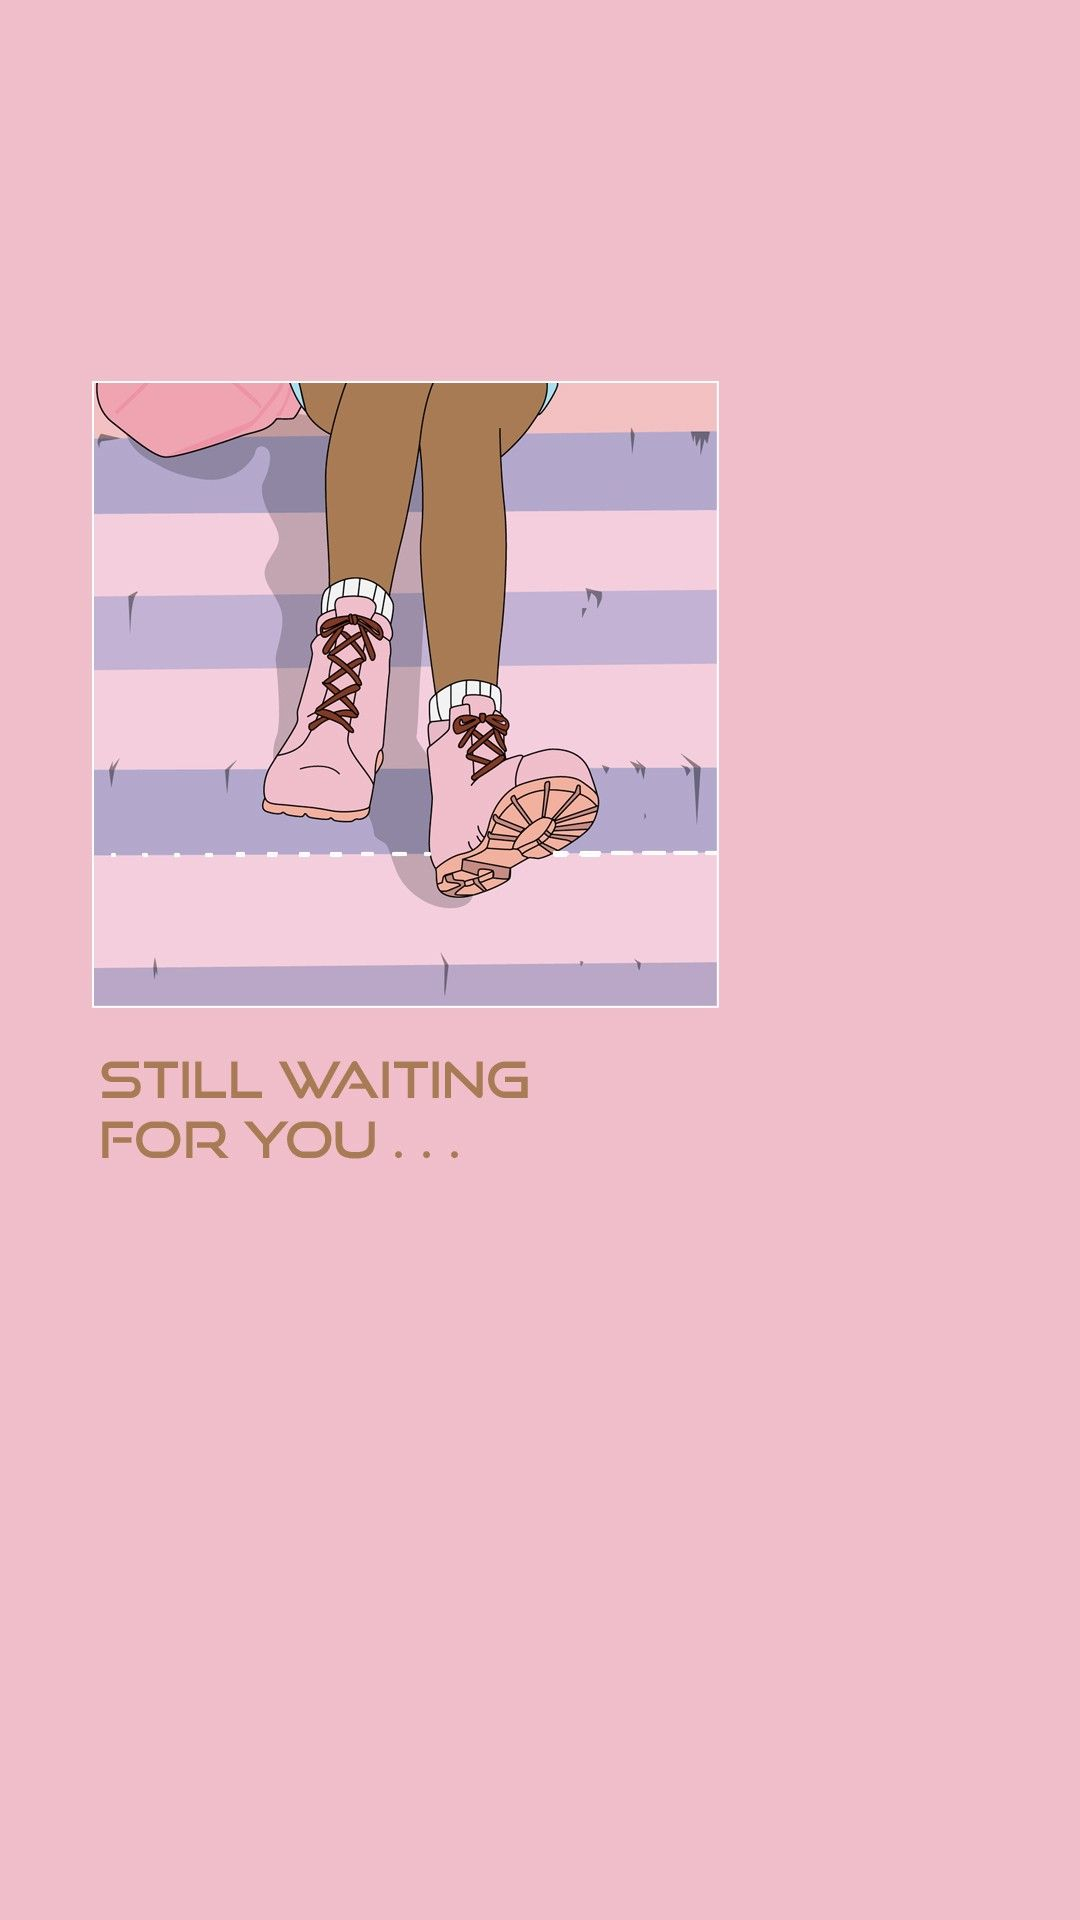 Still Waiting For You Quote Anime Manga Lifestyle Cute